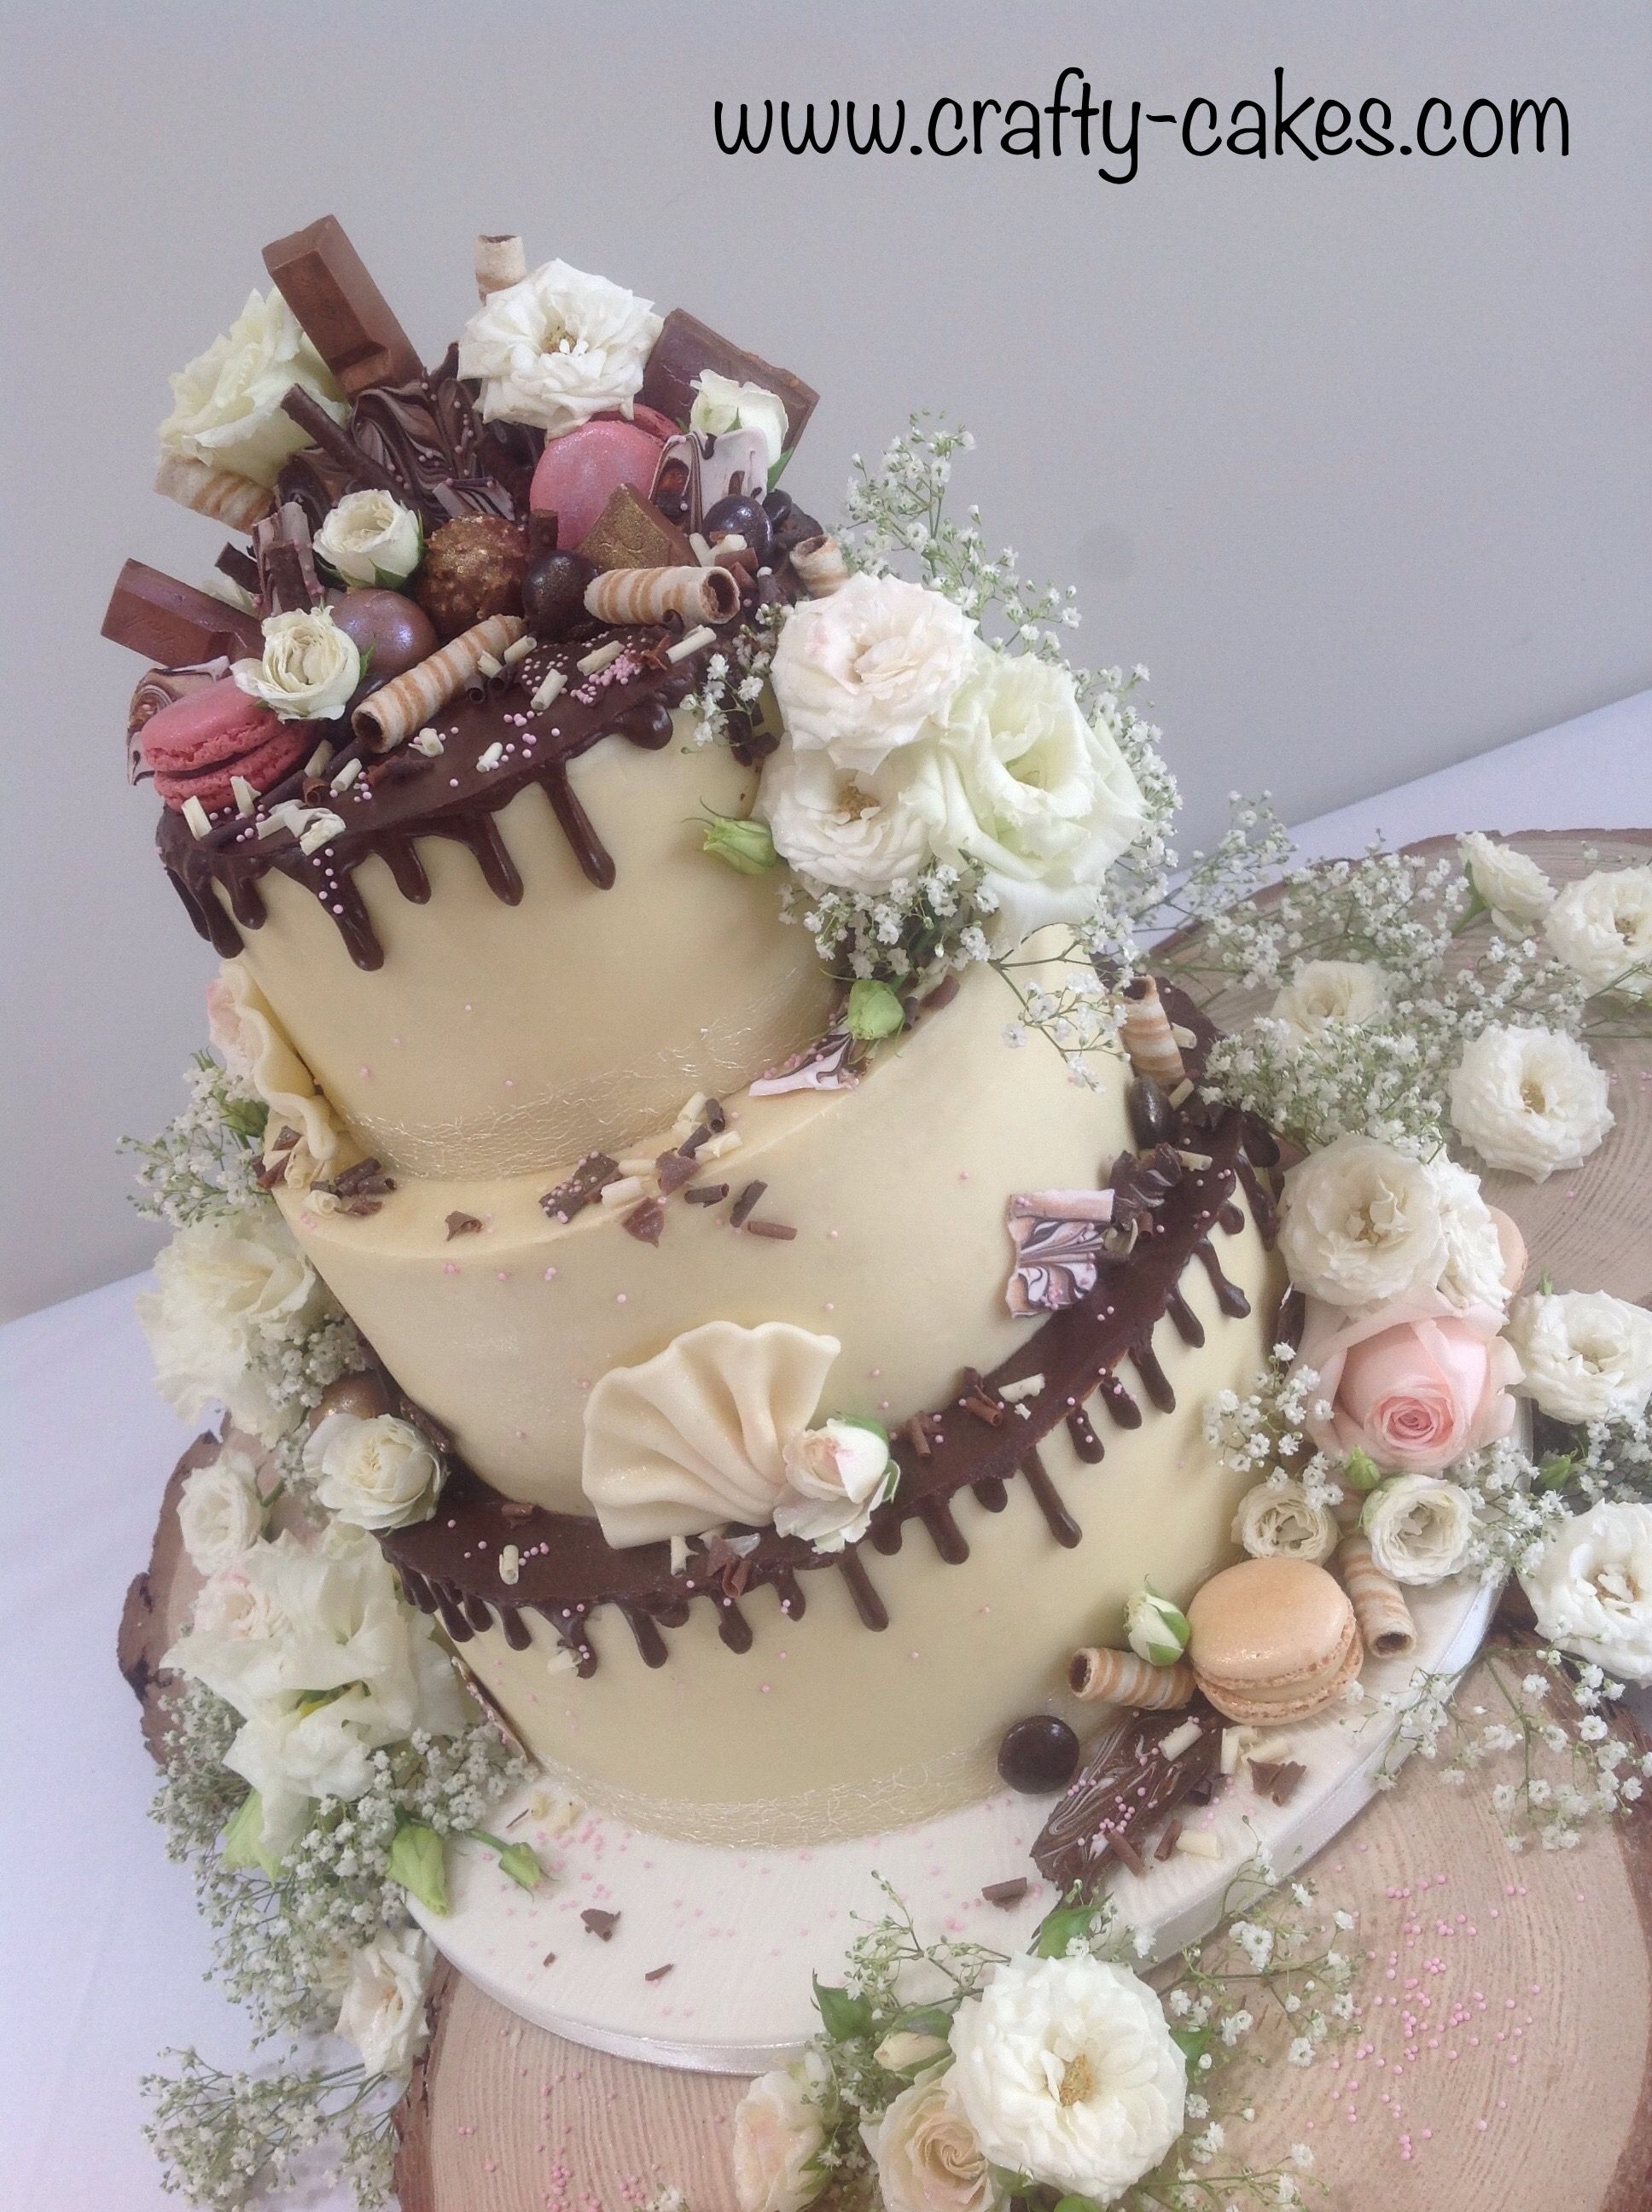 3 Tier Chocolate Drippy Wedding Cake